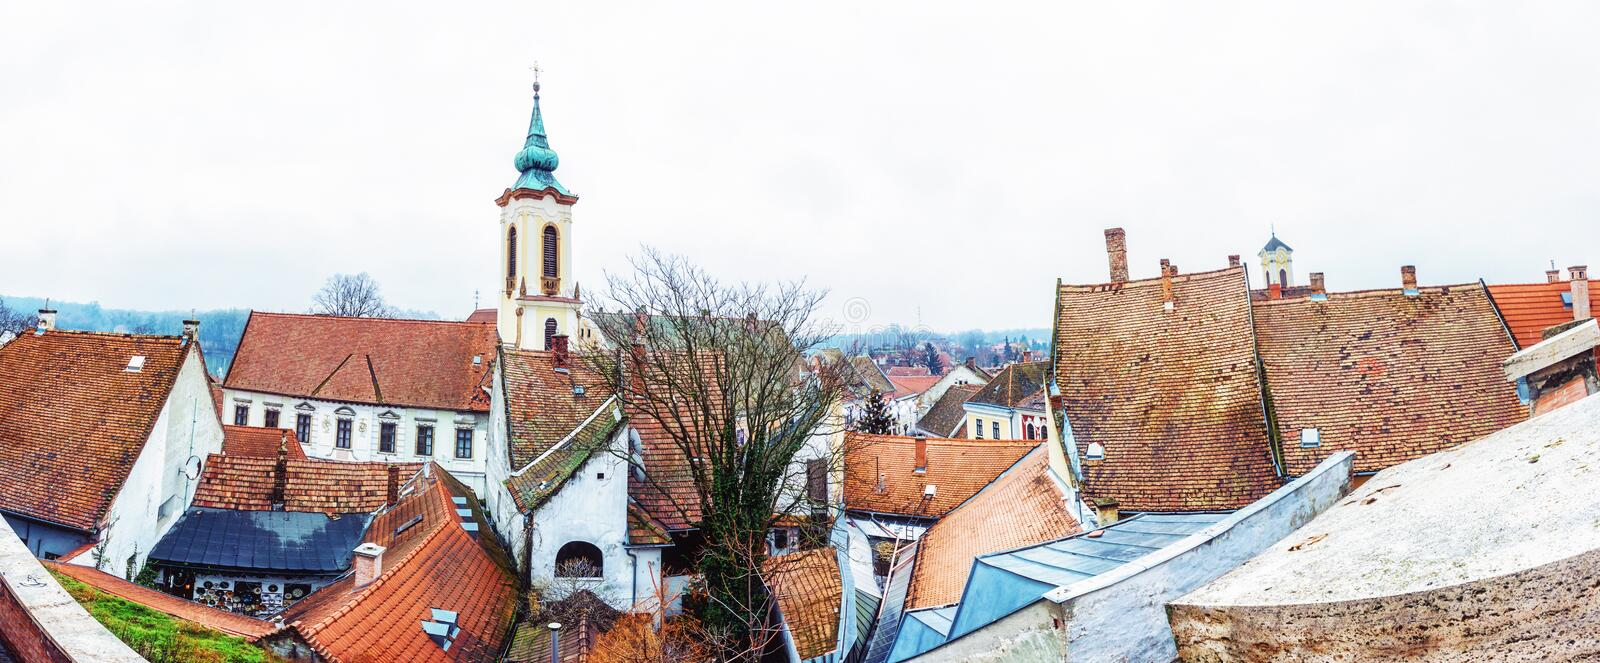 Annunciation church and red roofs of houses, Szentendre, Hungary. Annunciation church and red roofs of old houses, Szentendre, Hungary. Religious architecture stock photography